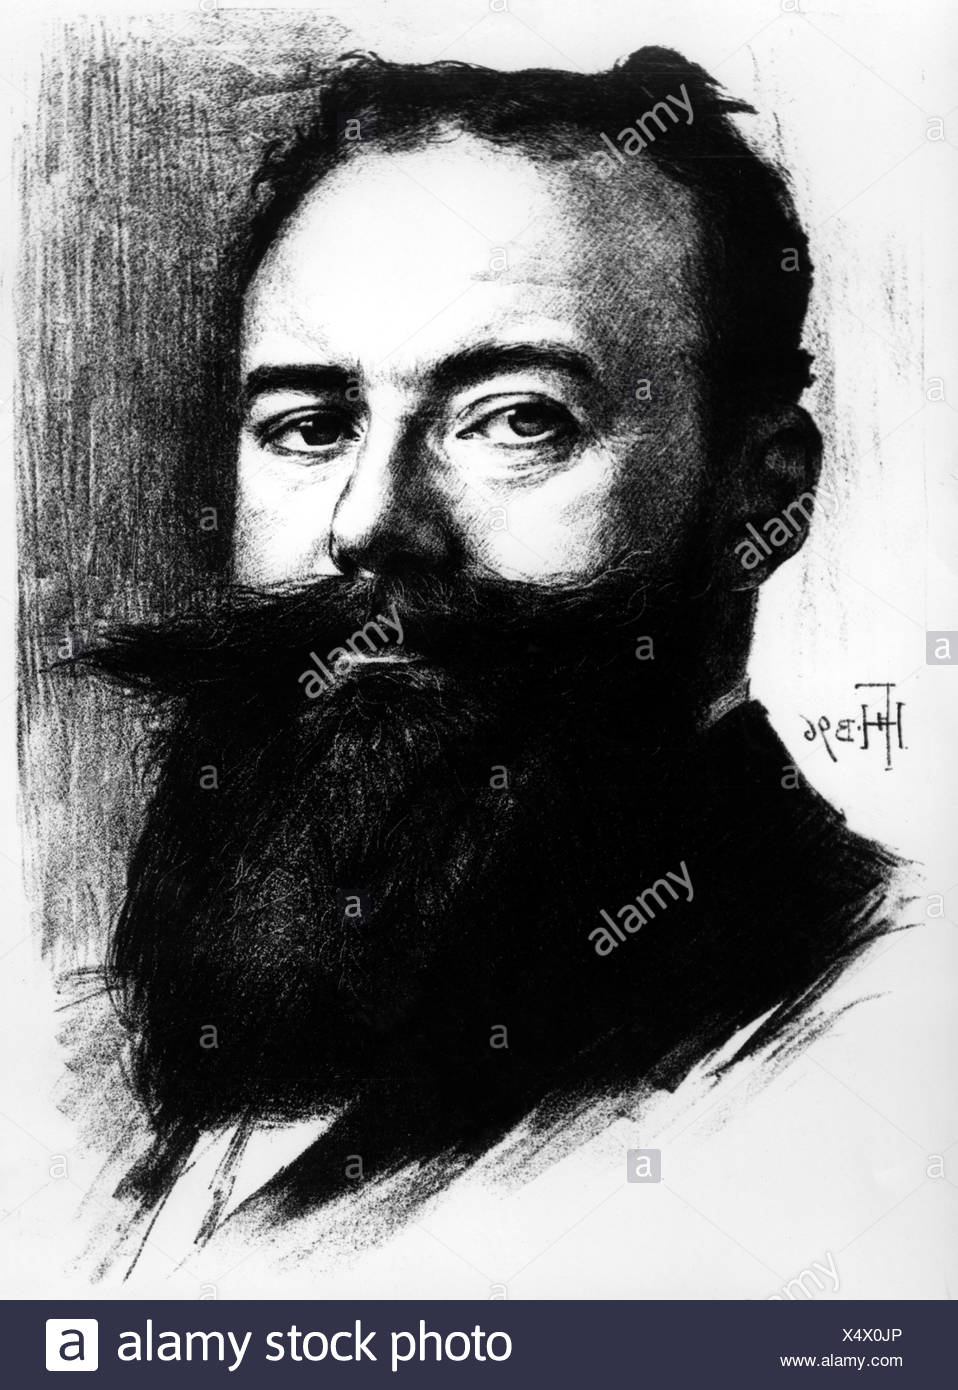 Sudermann, Herrmann, 30.9.1857 - 21.11.1928, German poet, dramatist, portrait, lithograph, by Hans Fechner, 1896, Additional-Rights-Clearances-NA - Stock Image